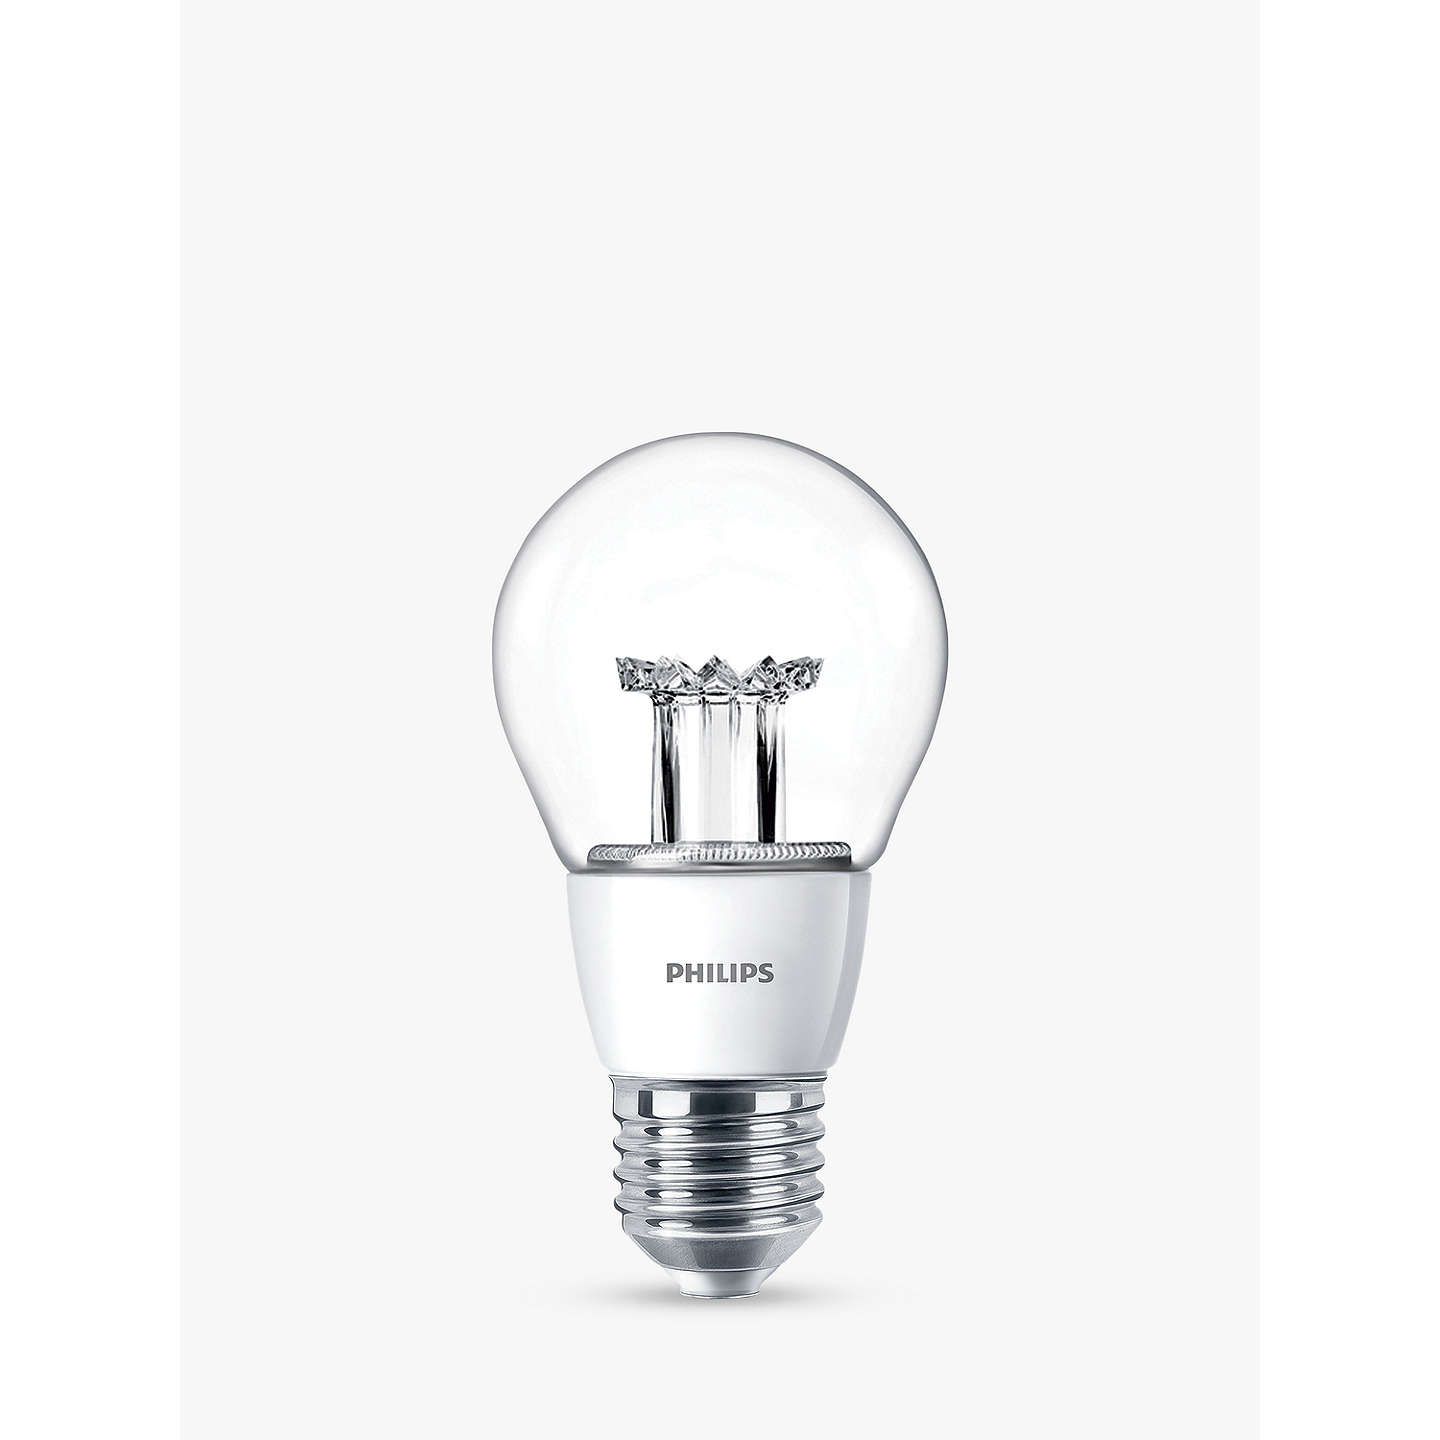 BuyPhilips 6W ES LED Classic Dimmable Light Bulb, Clear Online at johnlewis.com